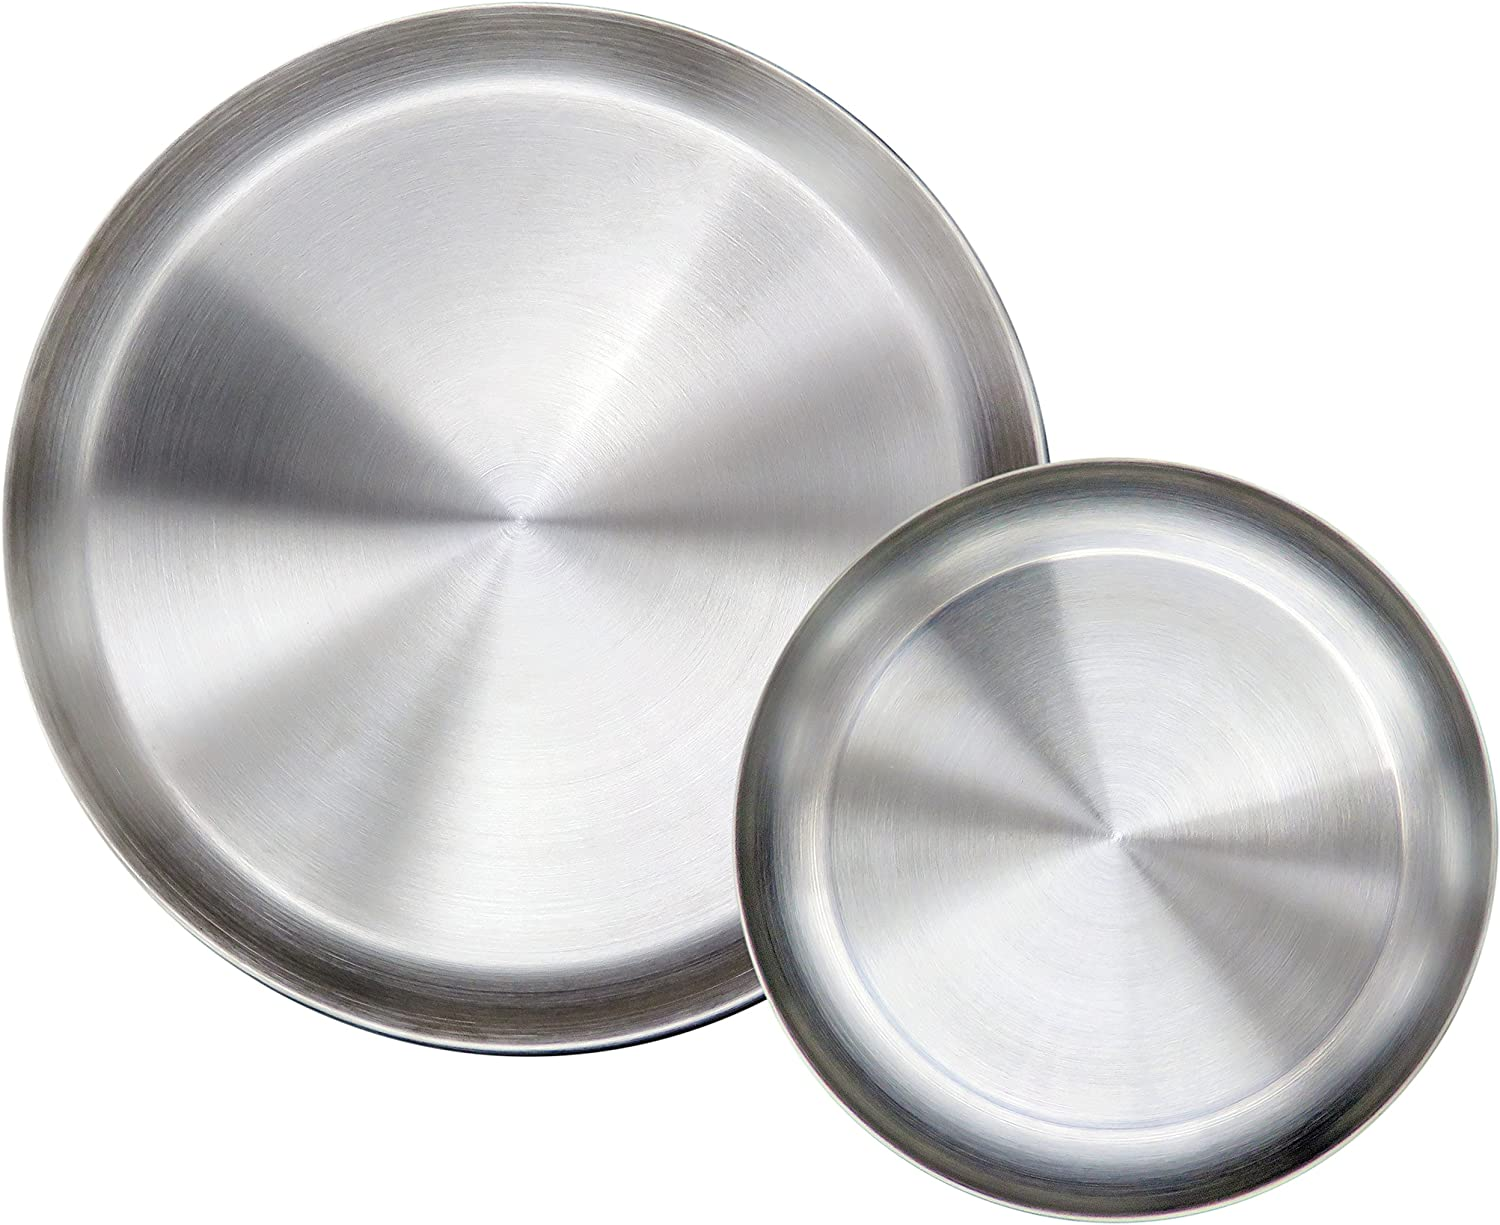 Immokaz Matte Polished 6.7 inch 304 Stainless Steel Round Plates Dish Set, for Dinner, Camping, Outdoor, Baby safe, Toddler, Kids, BPA Free, Pack of 2 (S)